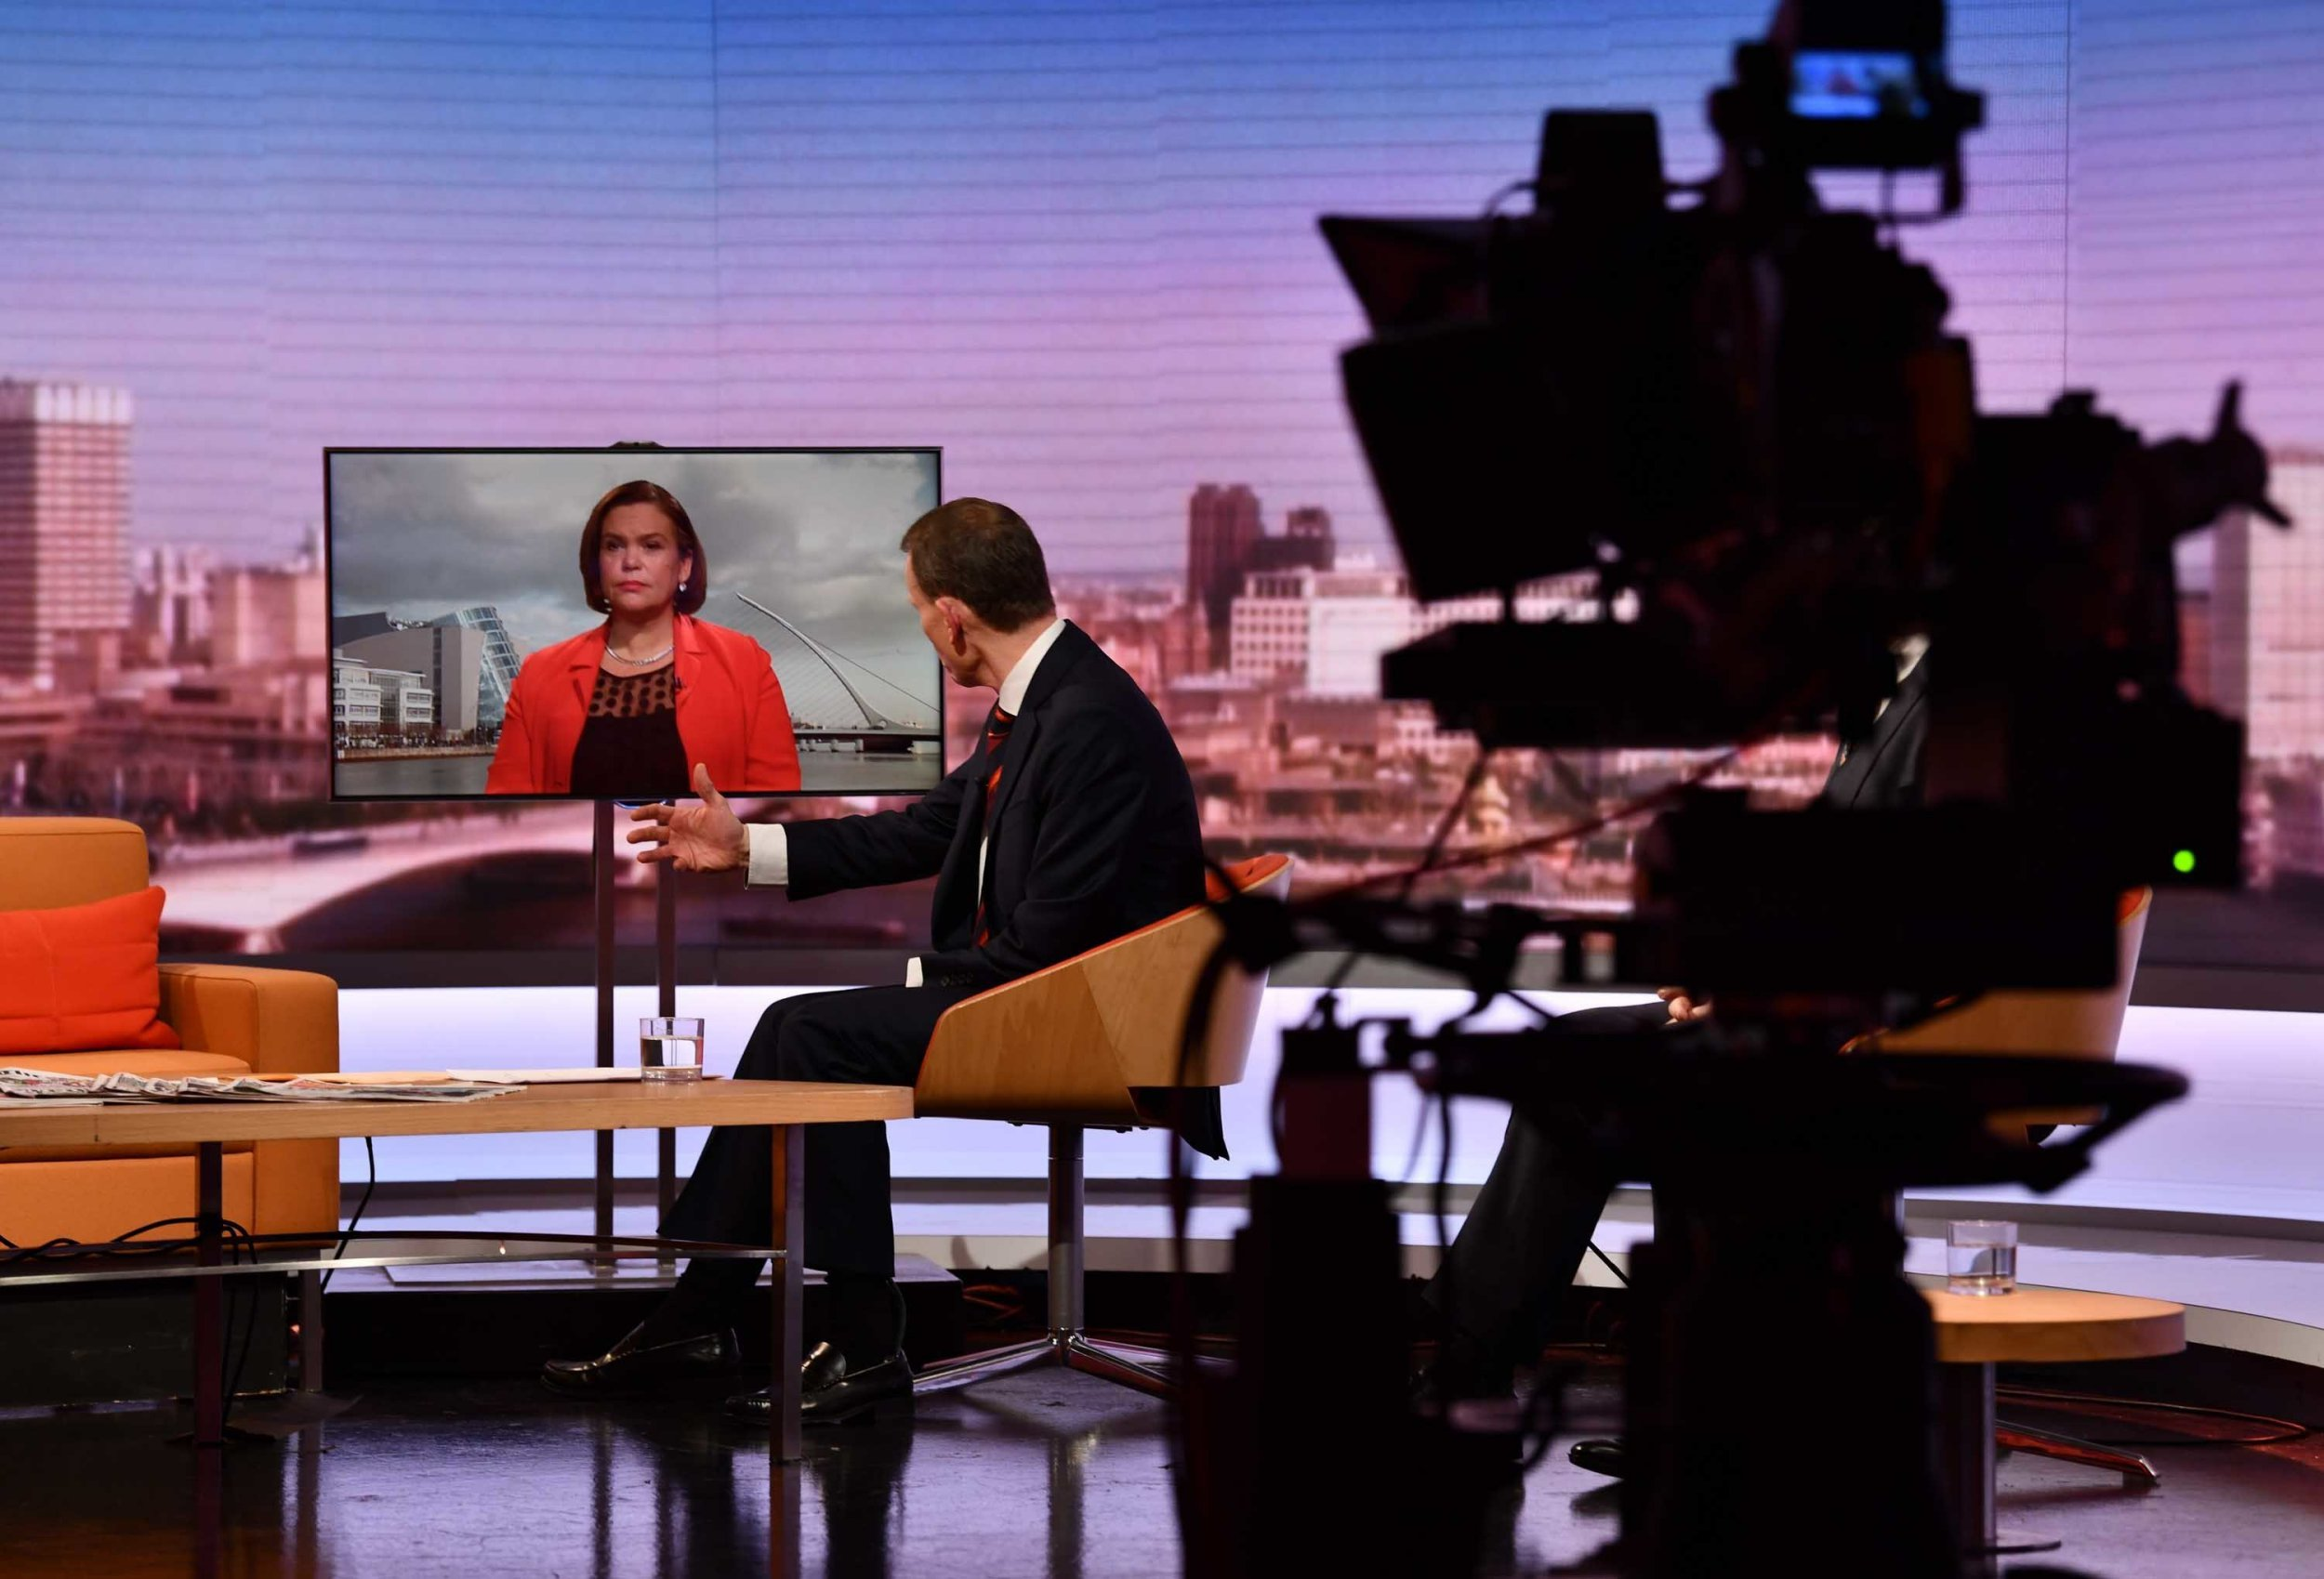 For use in UK, Ireland or Benelux countries only BBC handout photo of Leader of Sein Fein Mary Lou McDonald being interviewed by host Andrew Marr on the BBC1 current affairs programme, The Andrew Marr Show. PRESS ASSOCIATION Photo. Issue date: Sunday February 3, 2019. See PA story POLITICS Brexit. Photo credit should read: Jeff Overs/BBC/PA Wire NOTE TO EDITORS: Not for use more than 21 days after issue. You may use this picture without charge only for the purpose of publicising or reporting on current BBC programming, personnel or other BBC output or activity within 21 days of issue. Any use after that time MUST be cleared through BBC Picture Publicity. Please credit the image to the BBC and any named photographer or independent programme maker, as described in the caption.